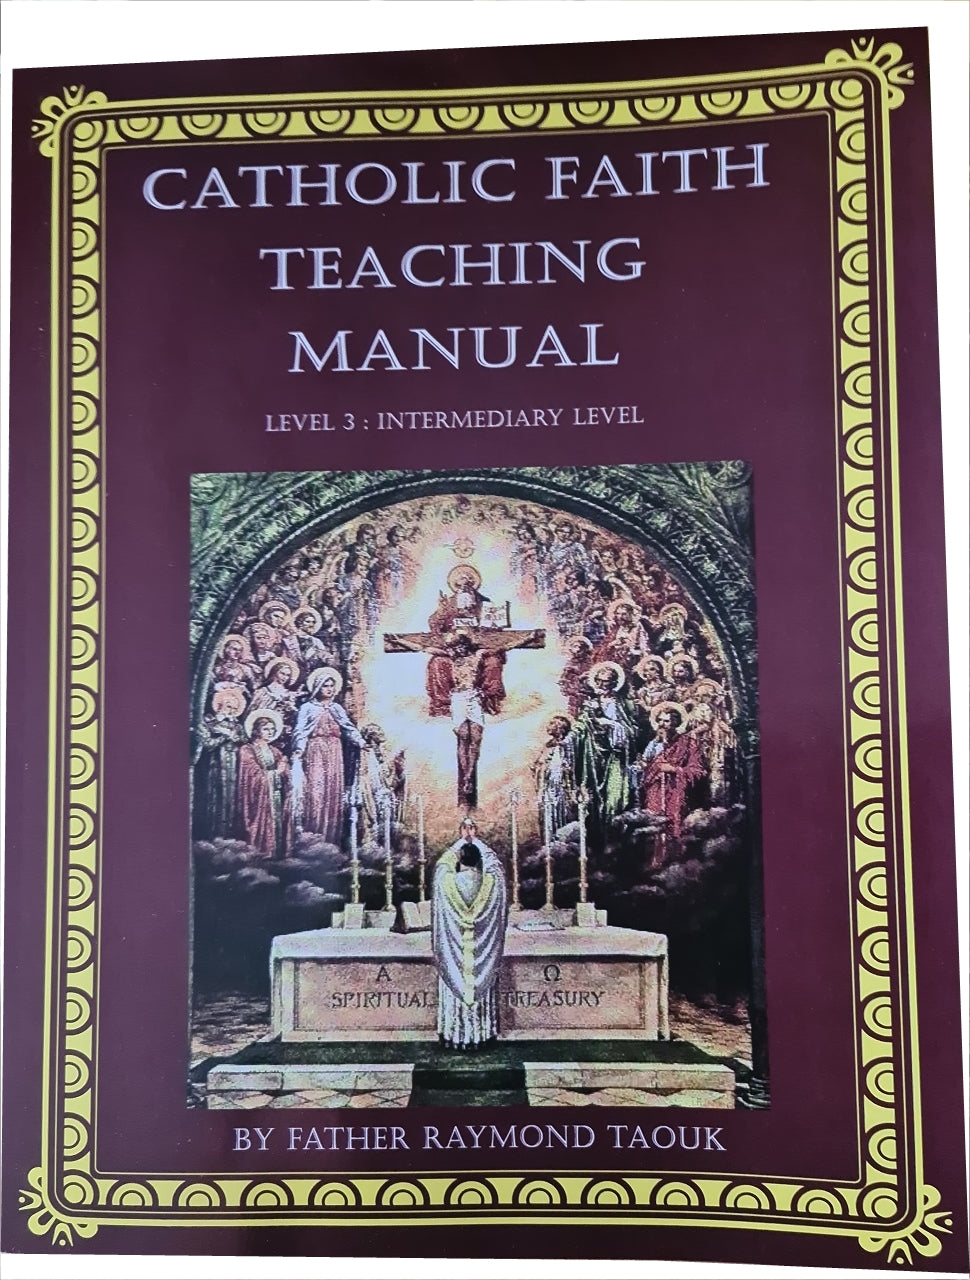 Catholic Faith Teaching manual, Level 3 - Intermediary Level  (age 11, Grade 4) By Father Taouk